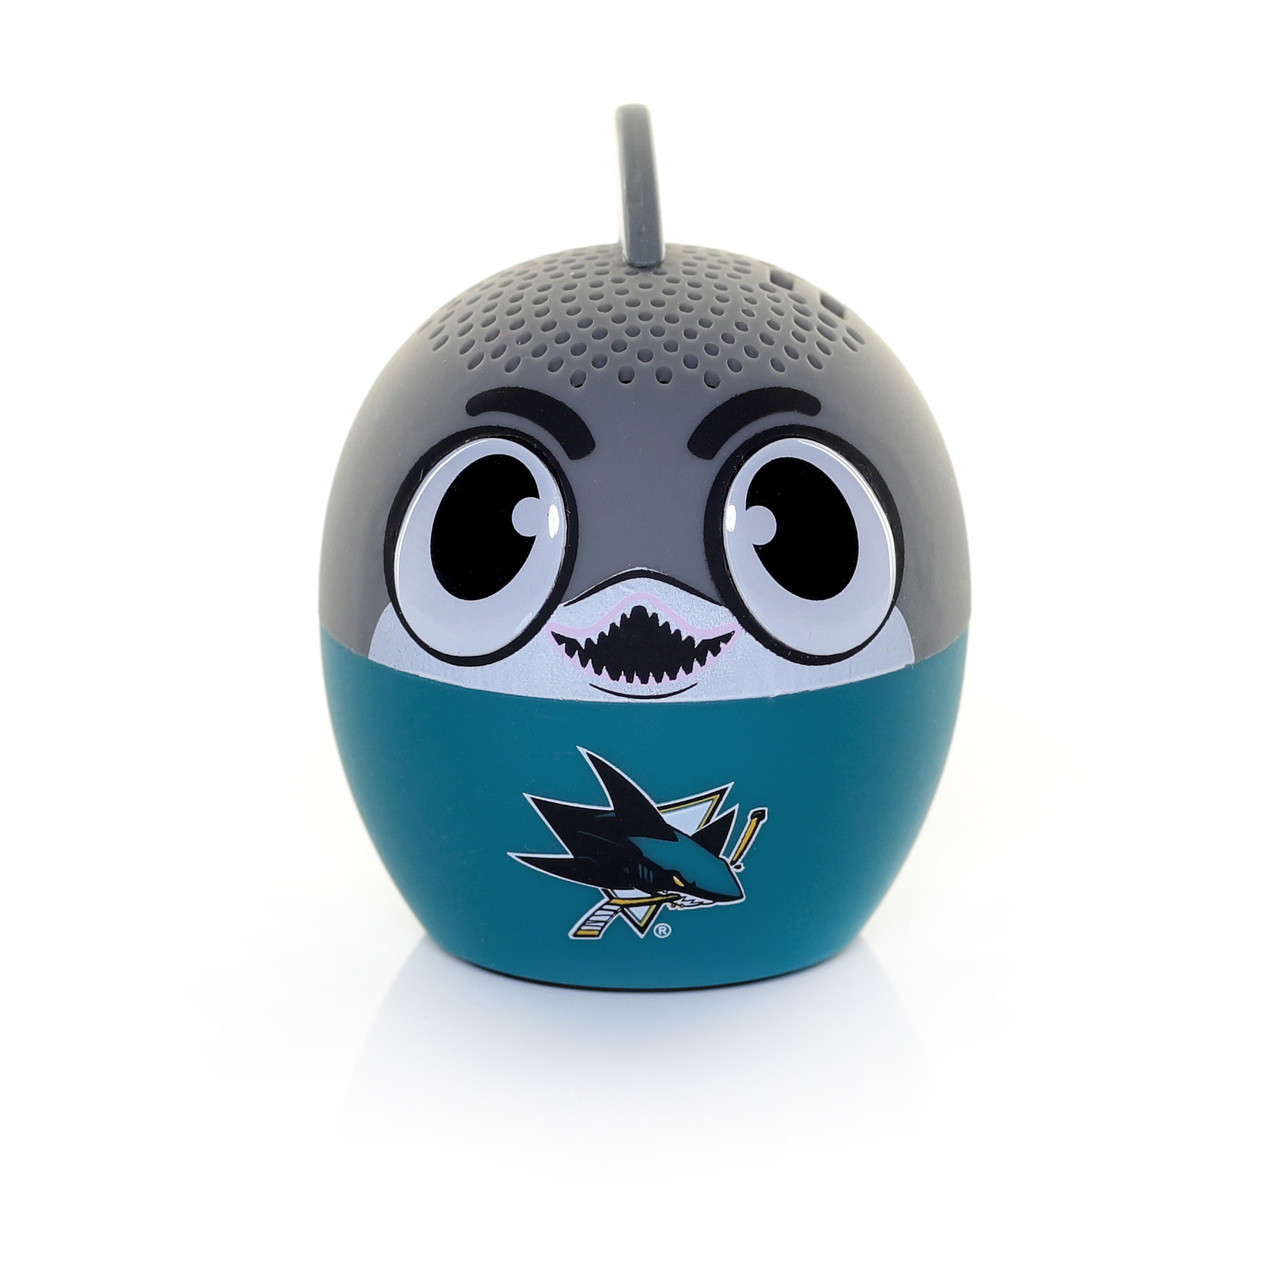 the latest 09783 3f7b0 San Jose Sharks Bitty Boomer-NHL Portable Wireless Bluetooth  Speaker-Awesome Sound